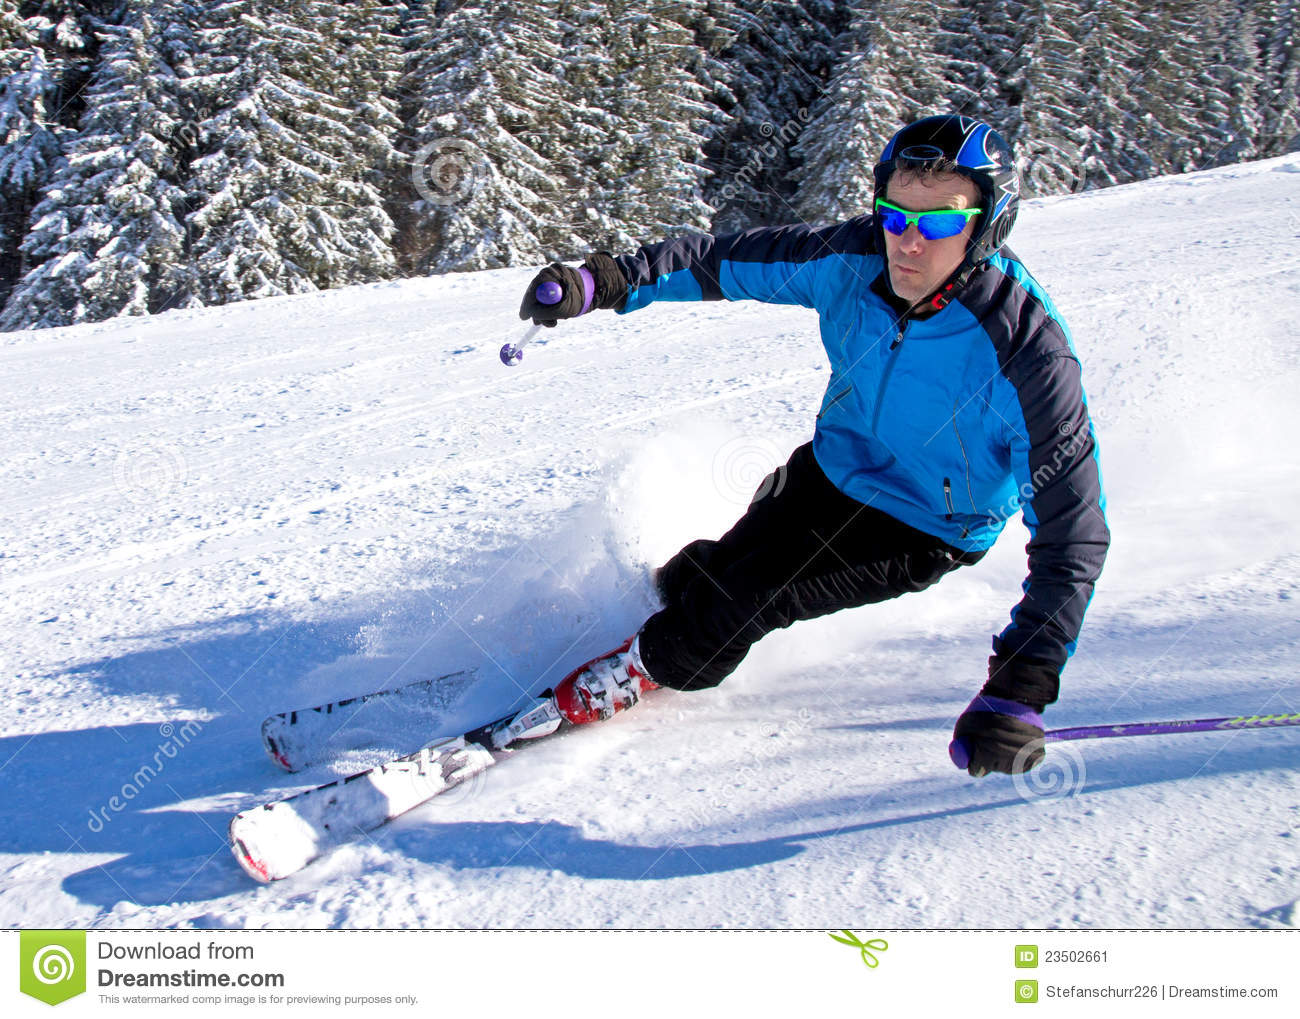 A skier is carving stock image